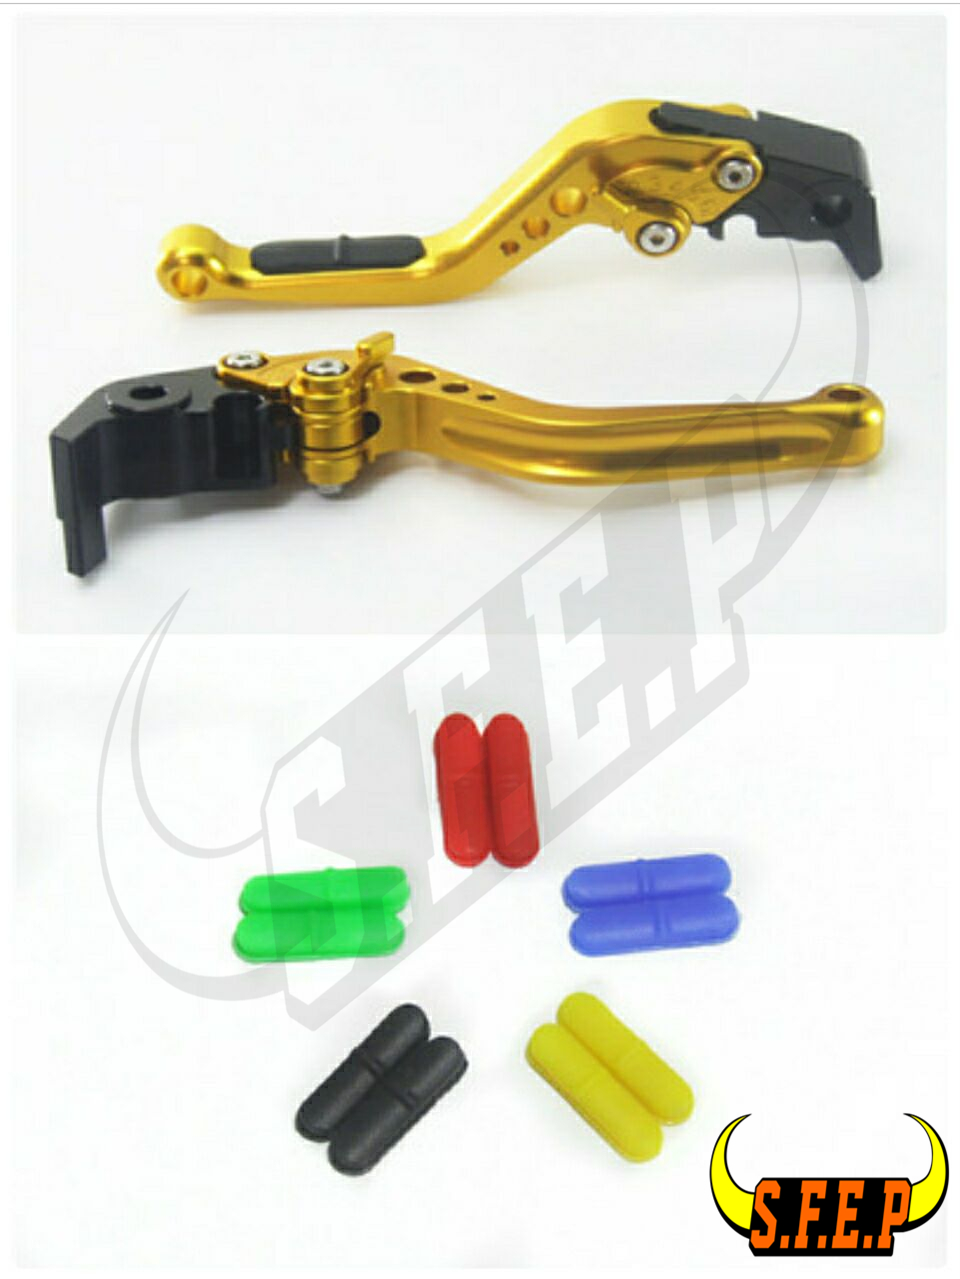 CNC Adjustable Motorcycle Brake and Clutch Levers with Anti-Slip For Ducati 900SS/1000SS 1998-2006